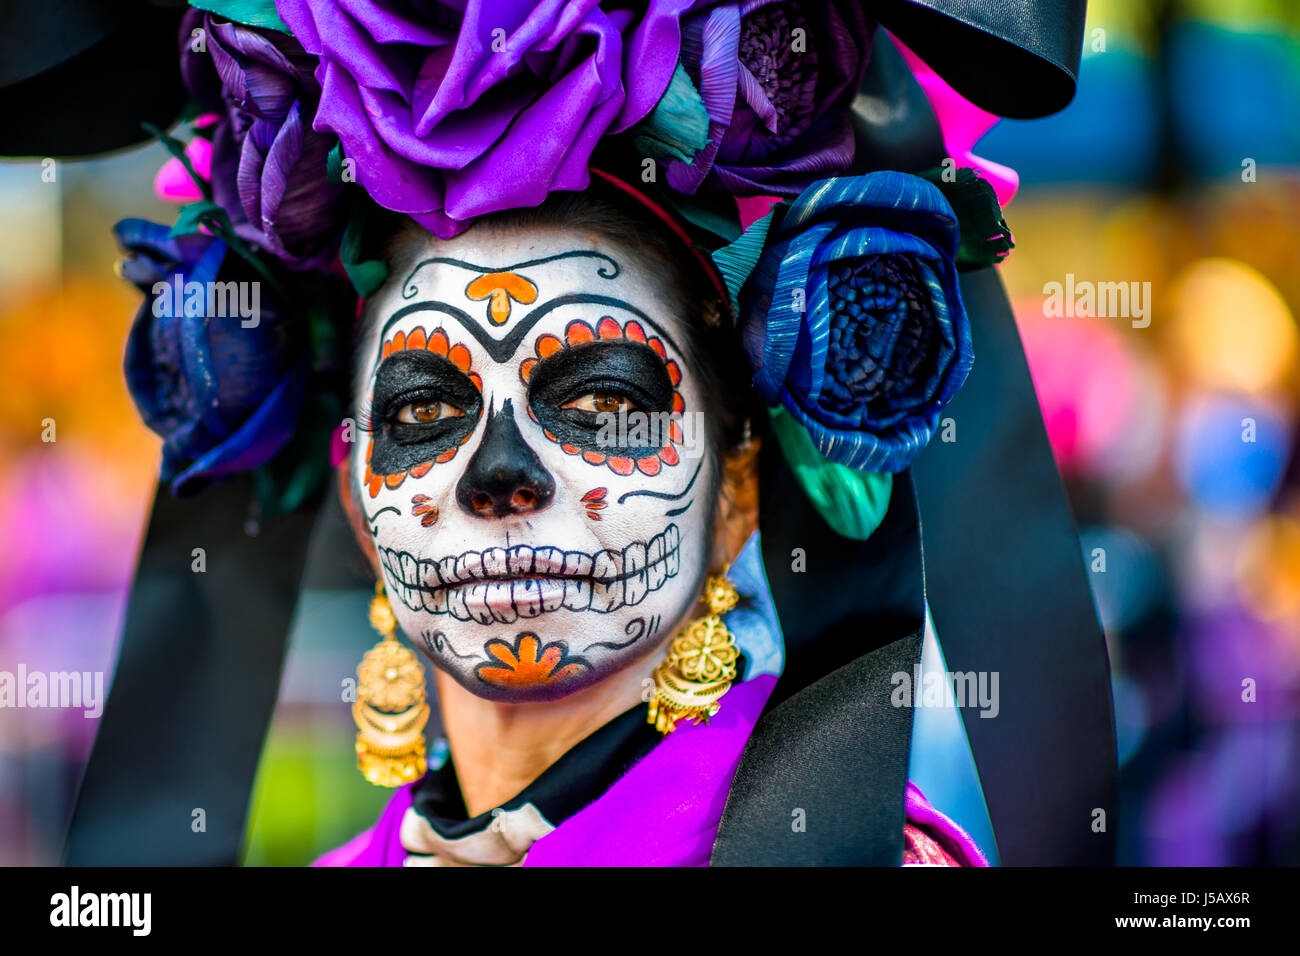 A young woman, dressed as La Catrina, performs during the Day of the Dead festival in Mexico City, Mexico. - Stock Image